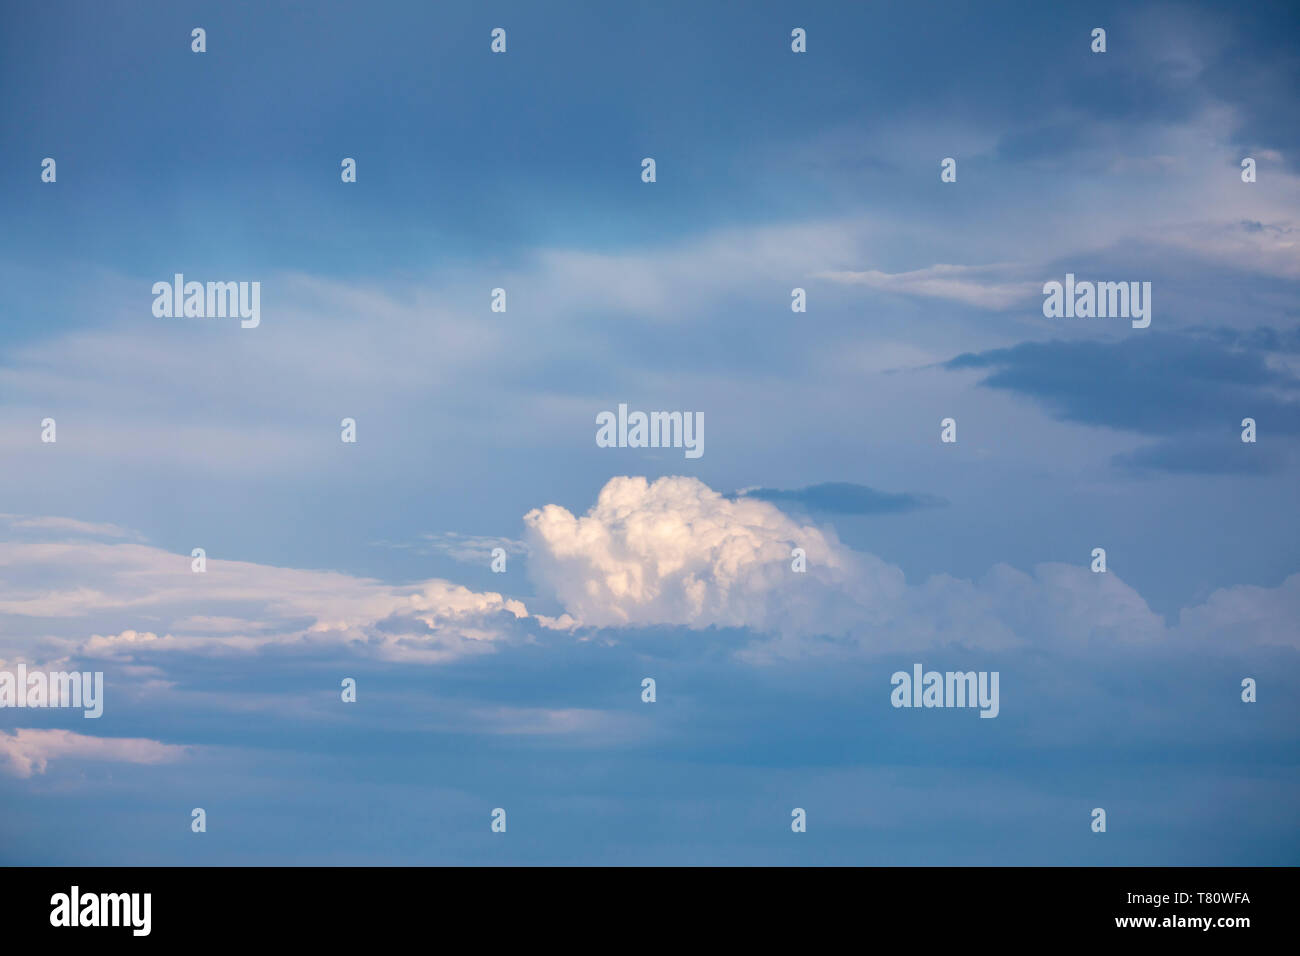 Clouds building in the sky above Etosha National Park, Namibia - Stock Image